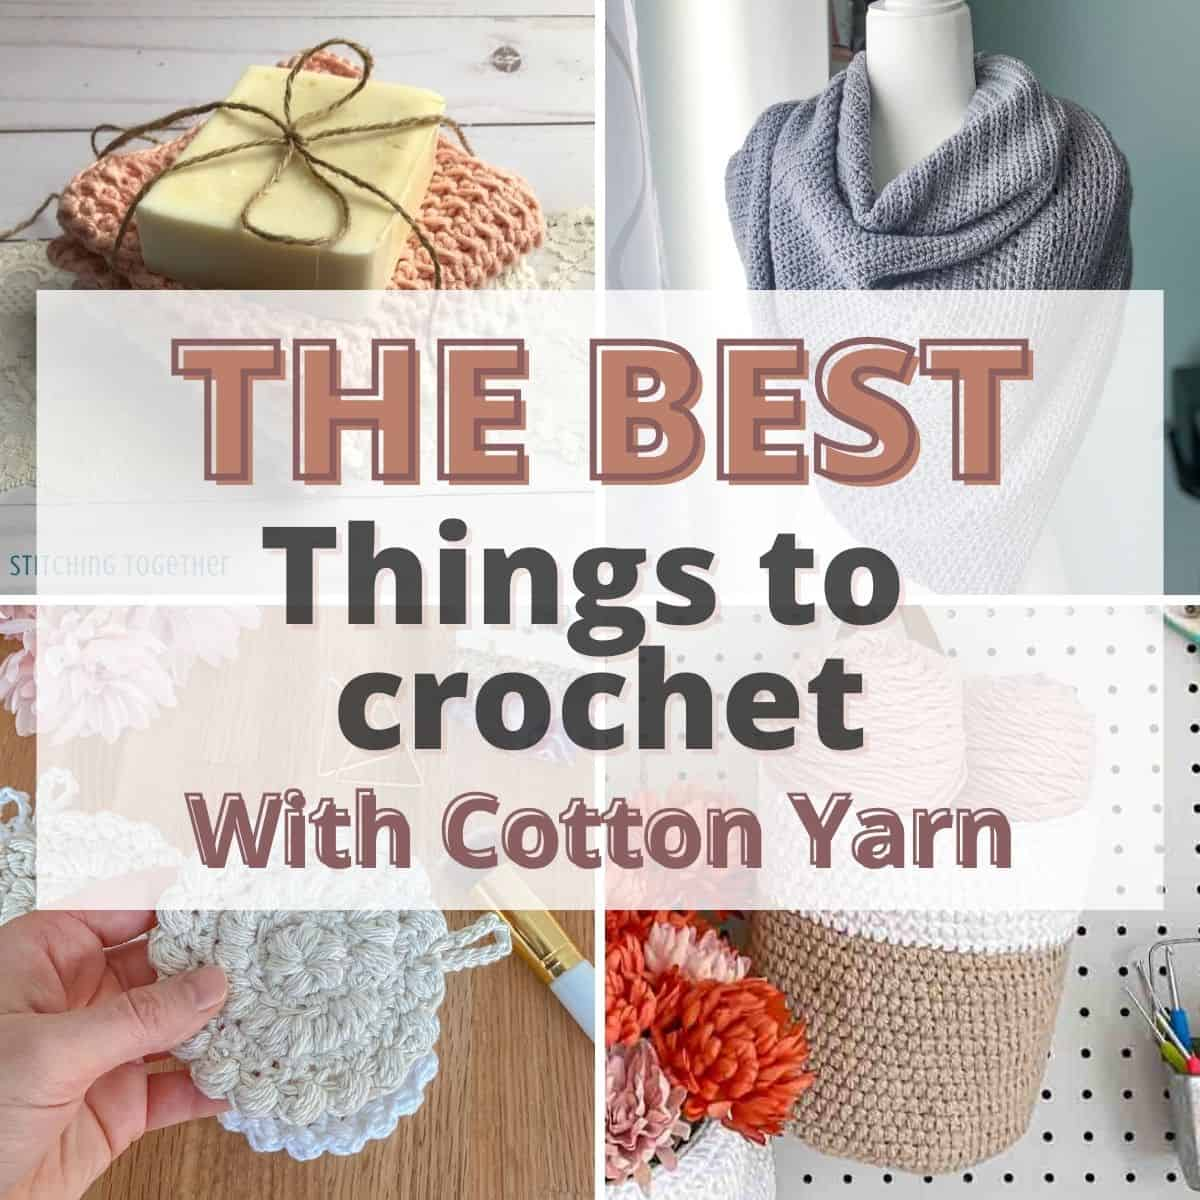 collage 4 different cotton crochet projects with text saying the best things to crochet with cotton yarn